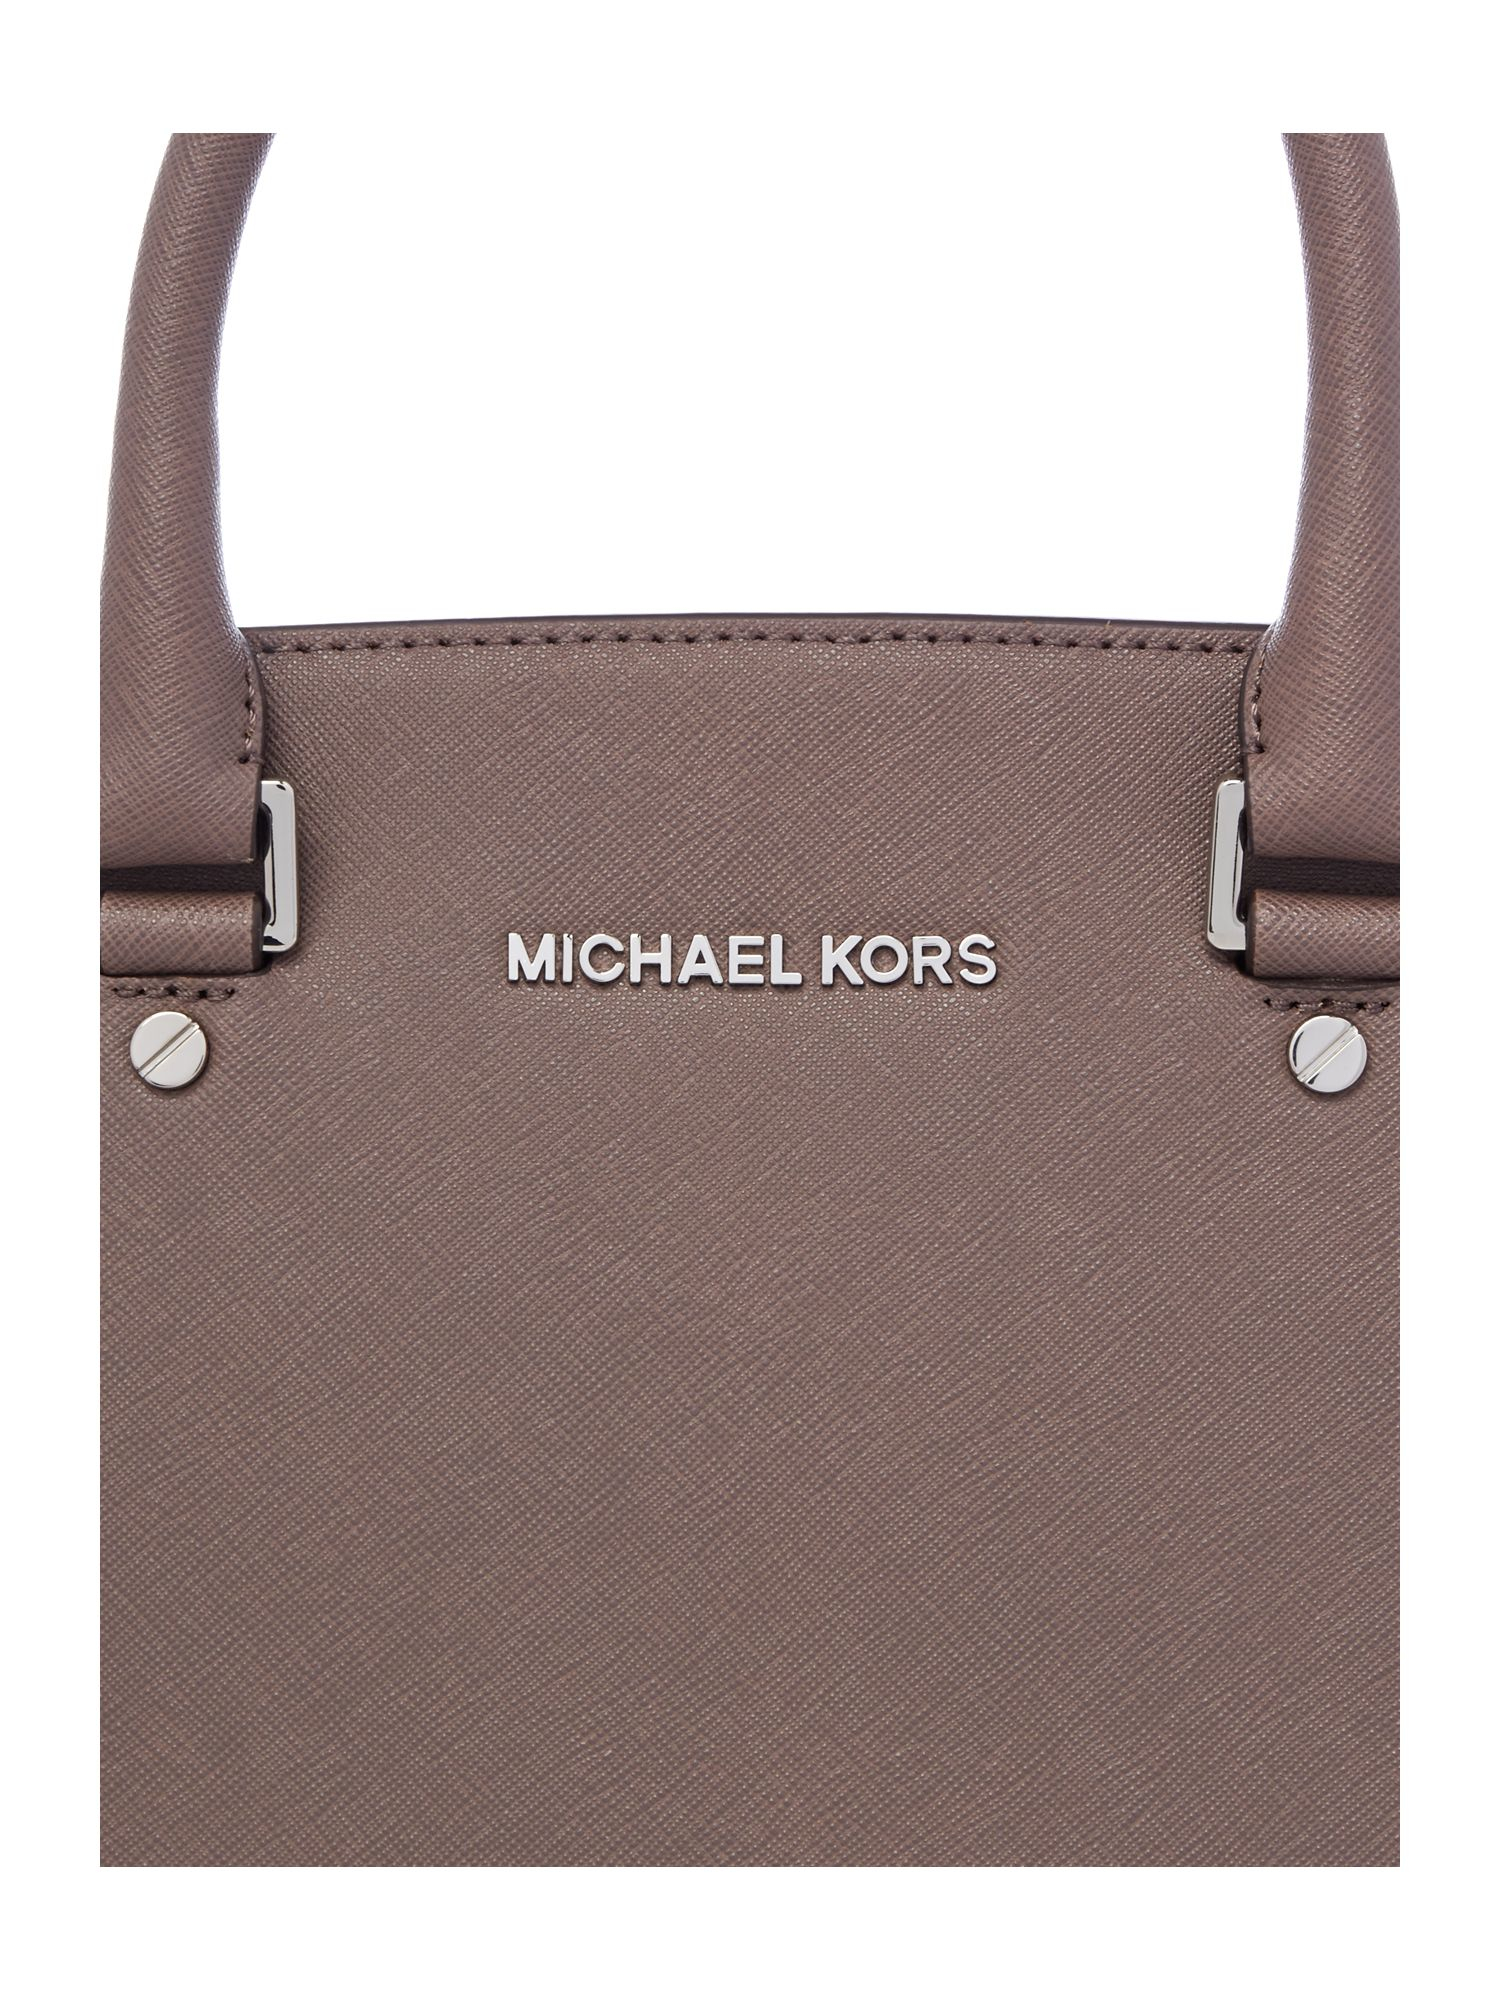 207f30132444 ... saffiano leather bag taupe leather ec62e 14880  coupon lyst michael  kors selma taupe large tote bag in gray c1a8b 777e3